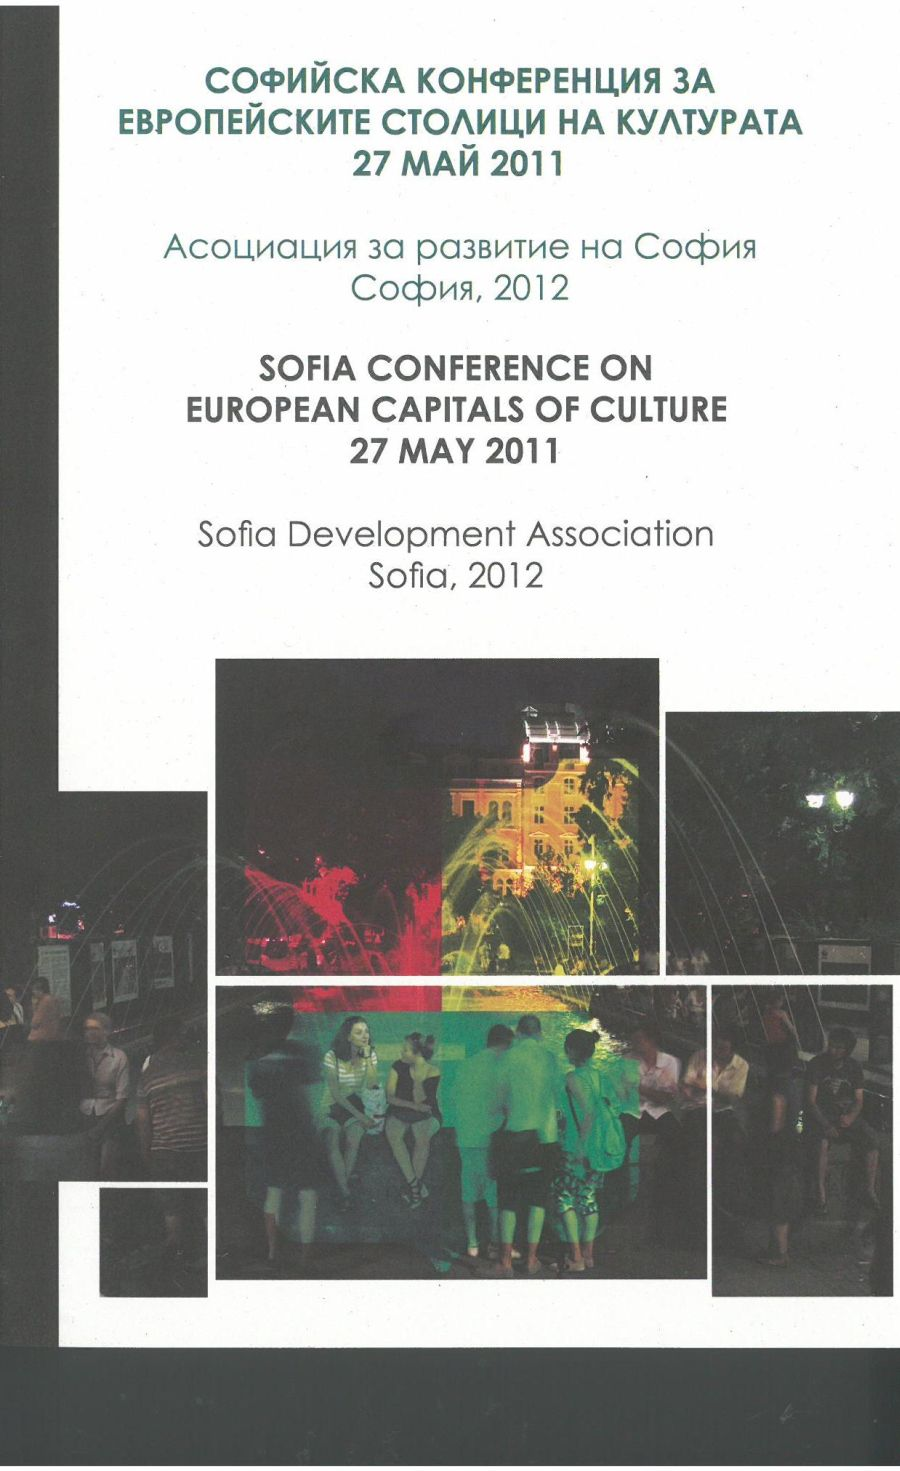 Sofia Conference on European Capitals of Culture